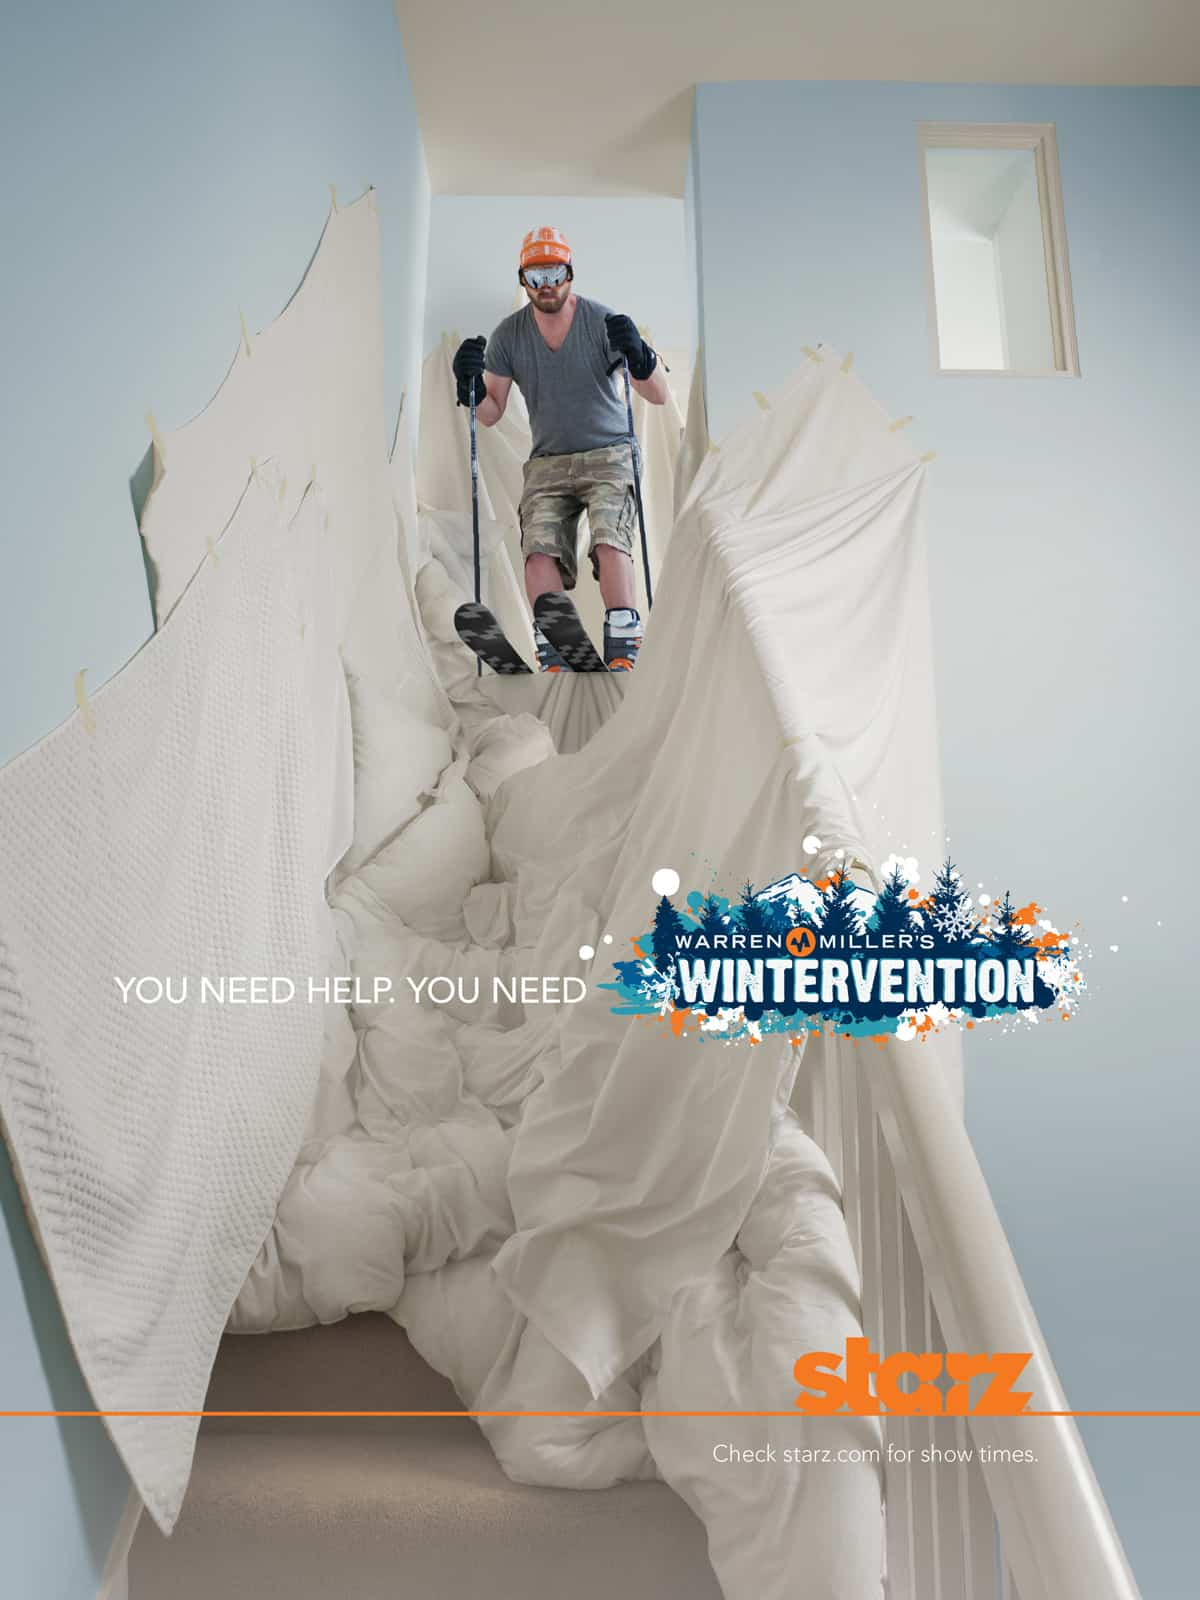 Pub Wintervention : ski